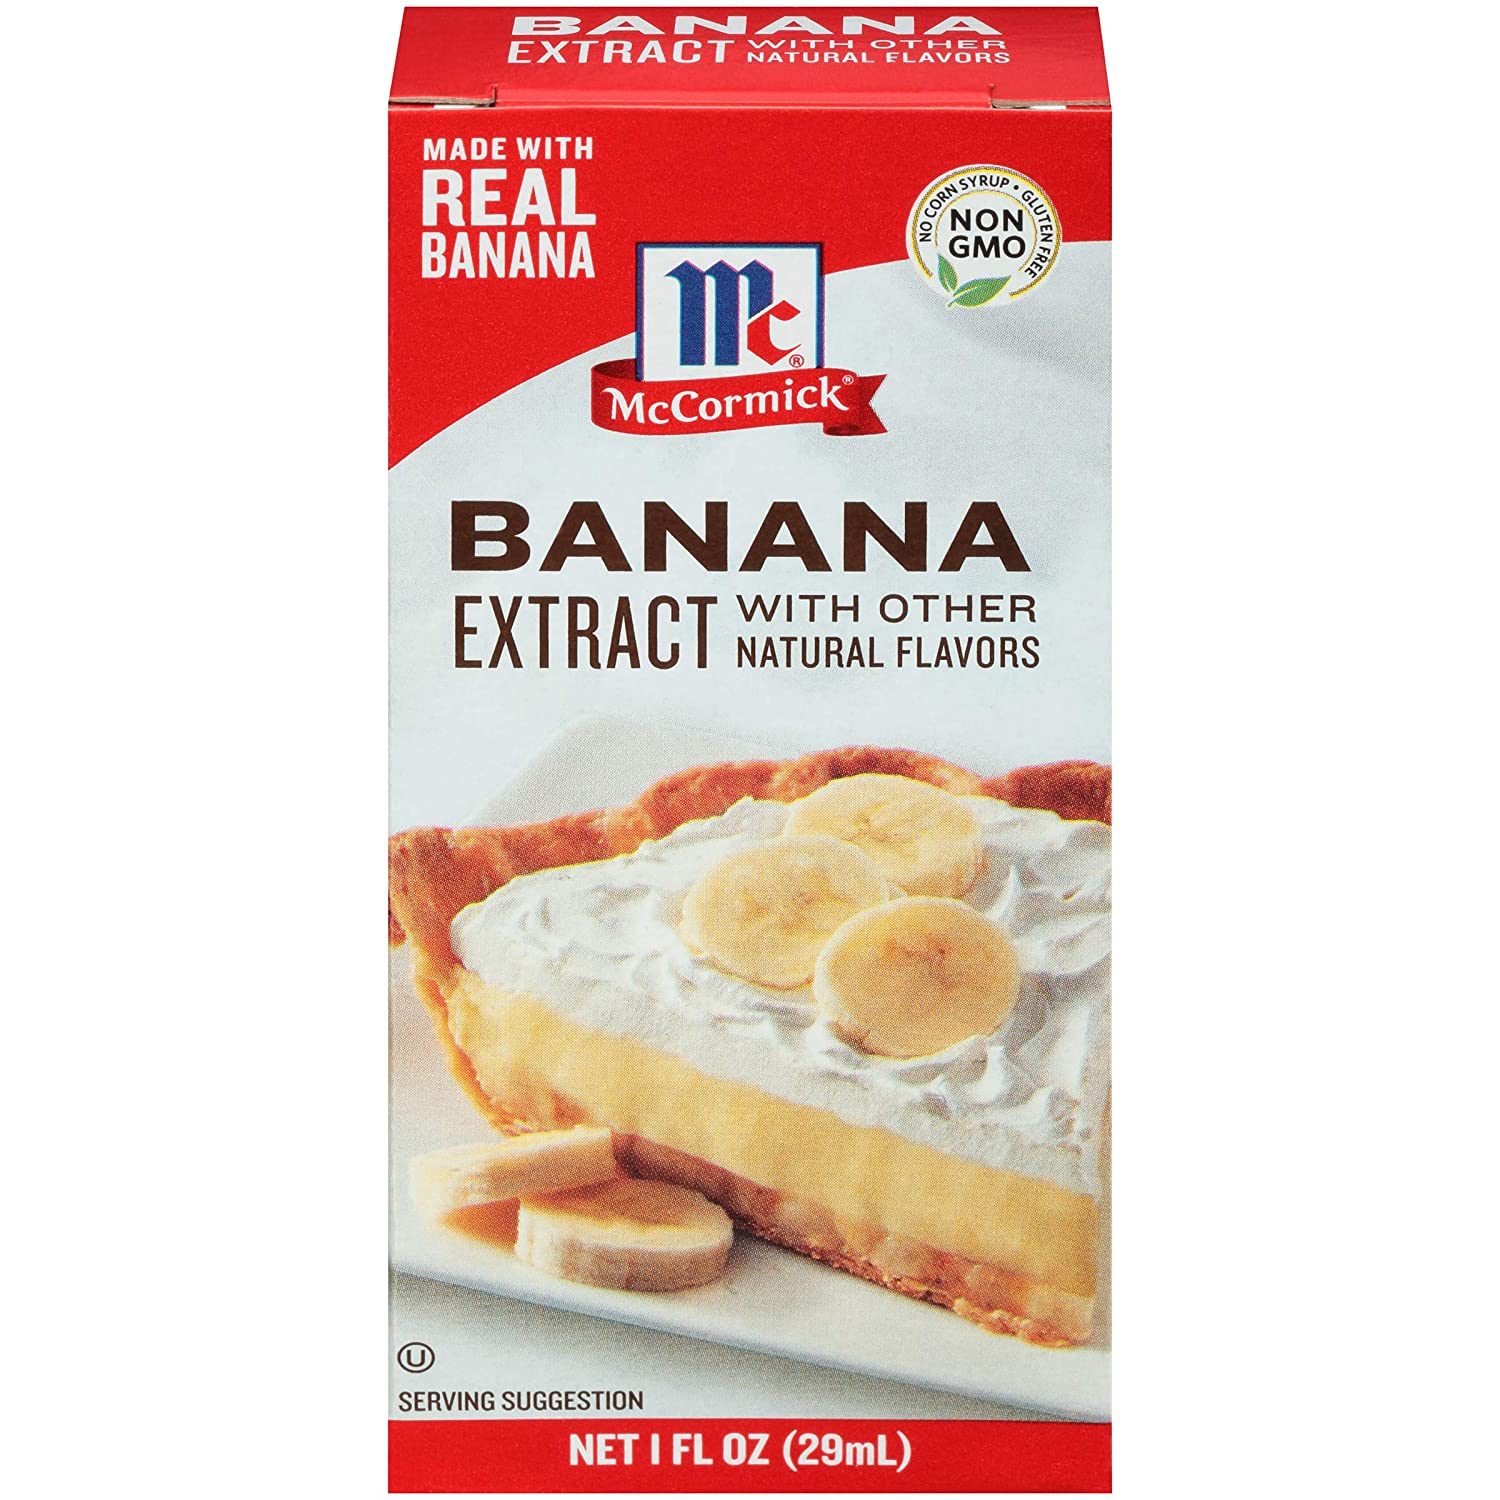 1-Oz McCormick Banana Extract $2.20 w/ S&S + Free Shipping w/ Prime or $25+